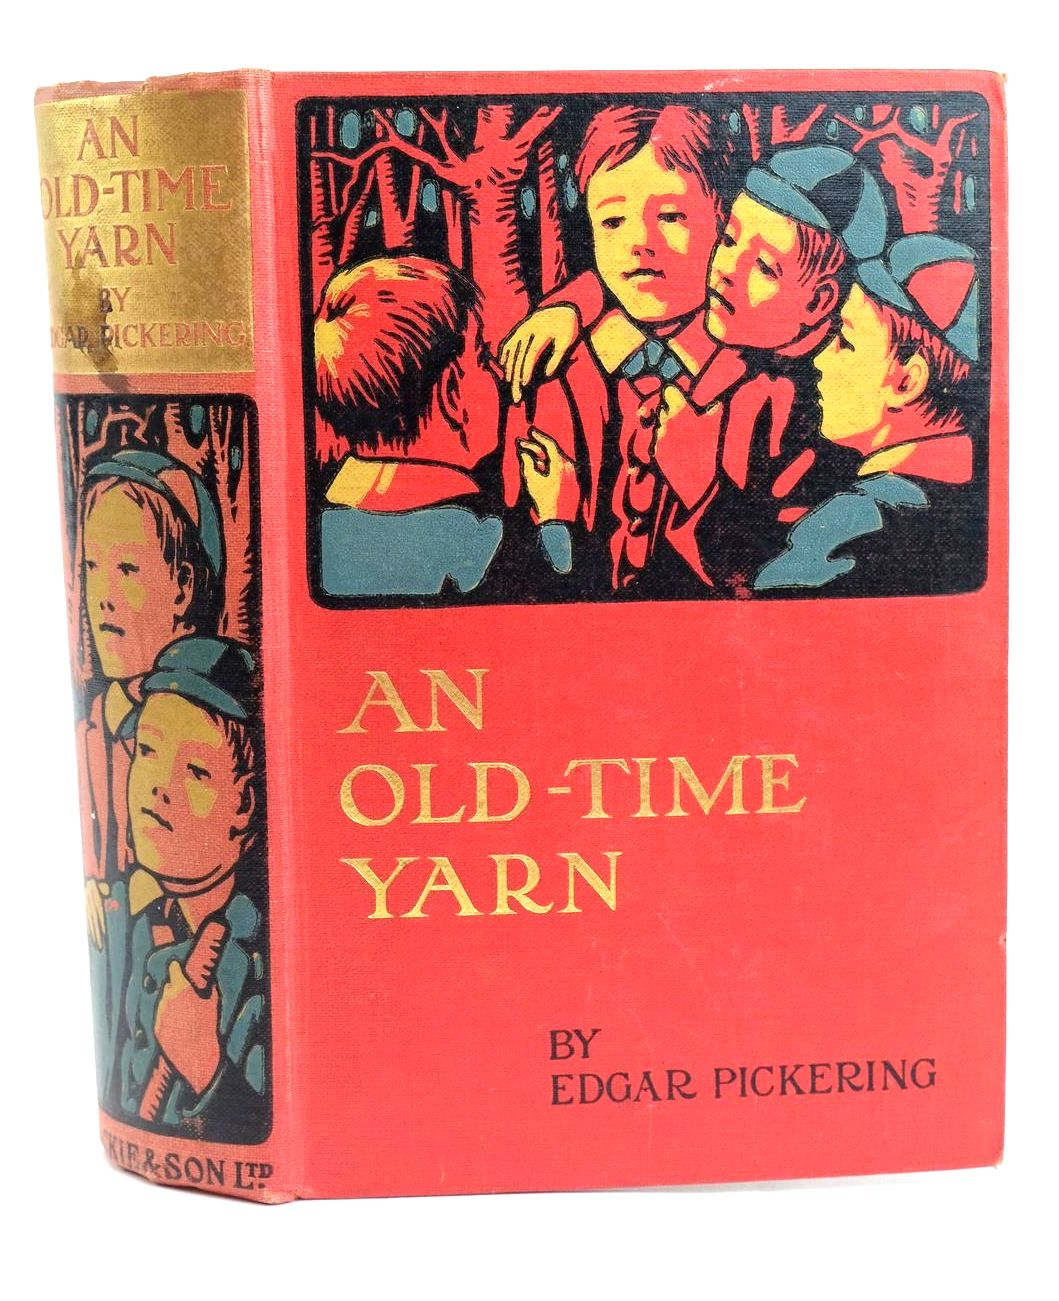 Photo of AN OLD-TIME YARN written by Pickering, Edgar illustrated by Pearse, Alfred published by Blackie & Son Ltd. (STOCK CODE: 1319679)  for sale by Stella & Rose's Books